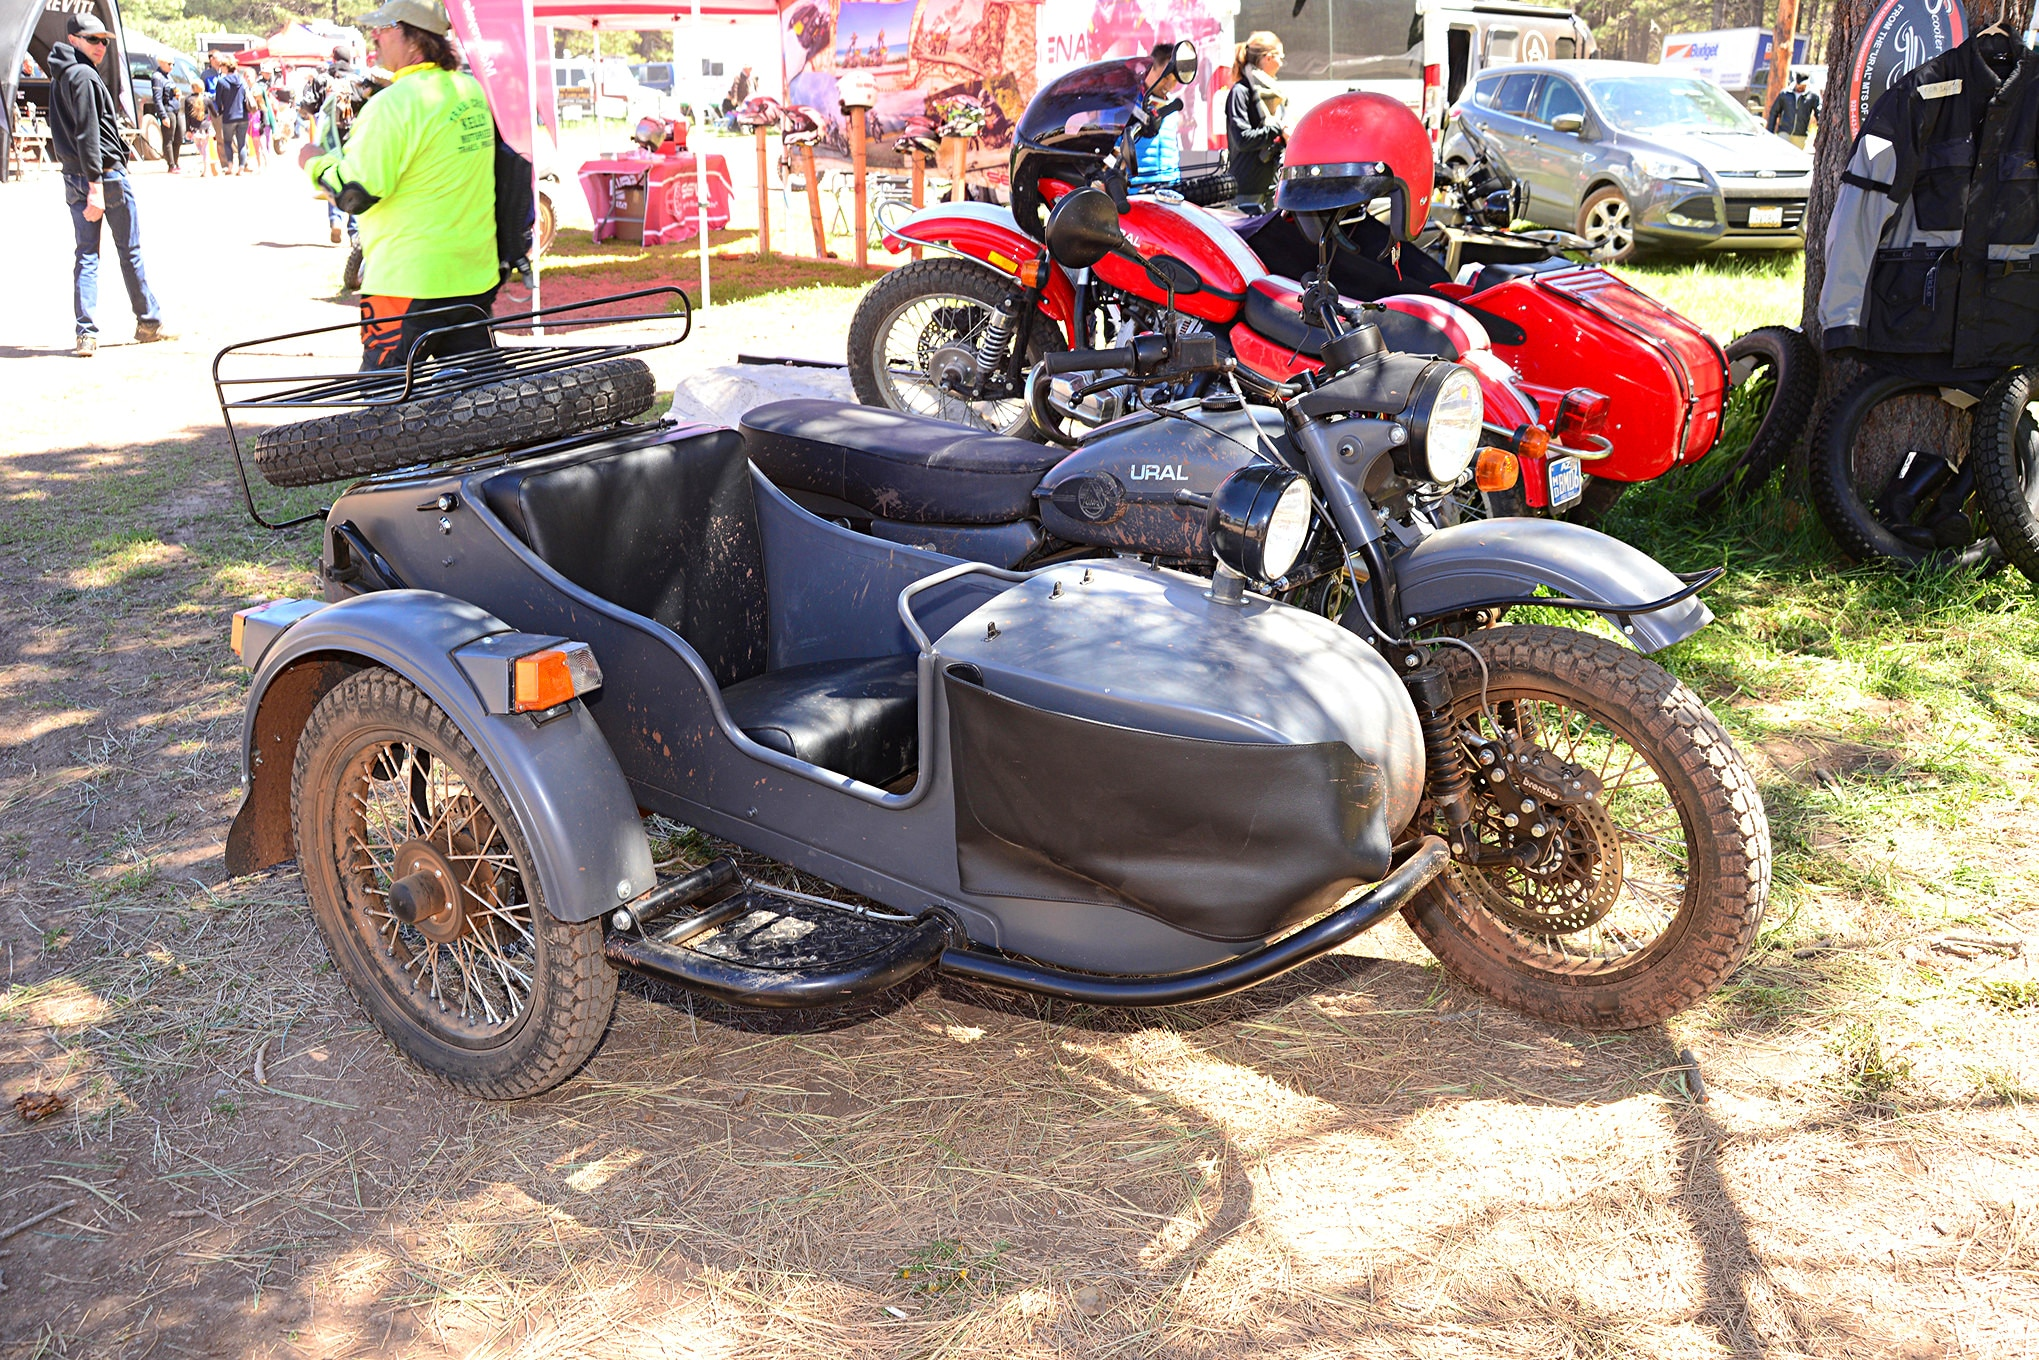 019 2016 Overland Expo 4x4 Vehicles Camping Flagstaff Mormon Lake Arizona Ural Sidecar Motorcycle Offroad Photo 178316846